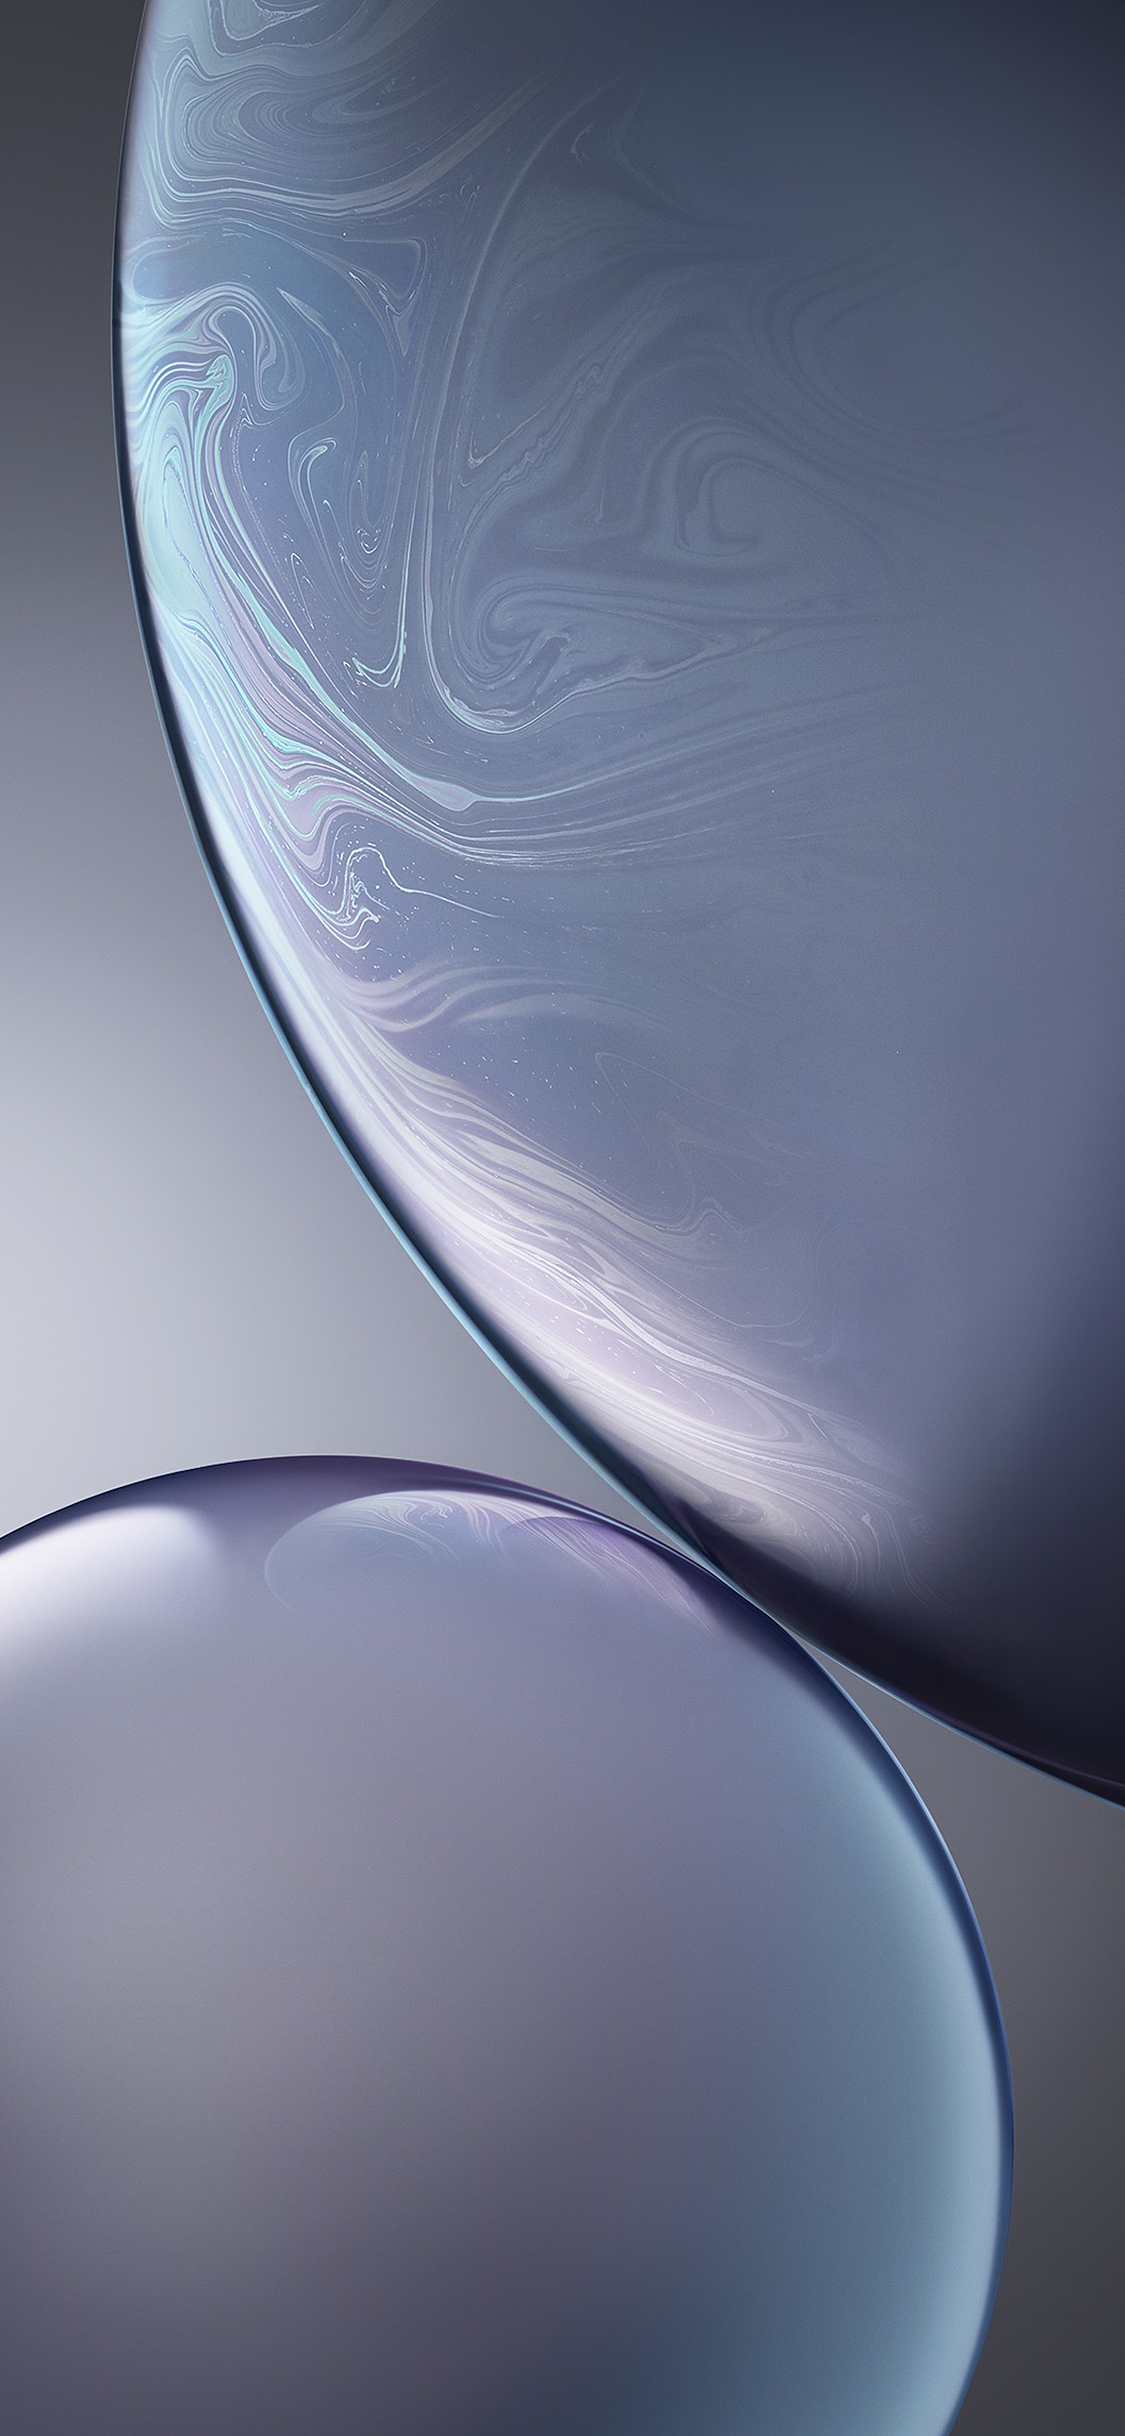 Iphone Xr White Wallpapers Top Free Iphone Xr White